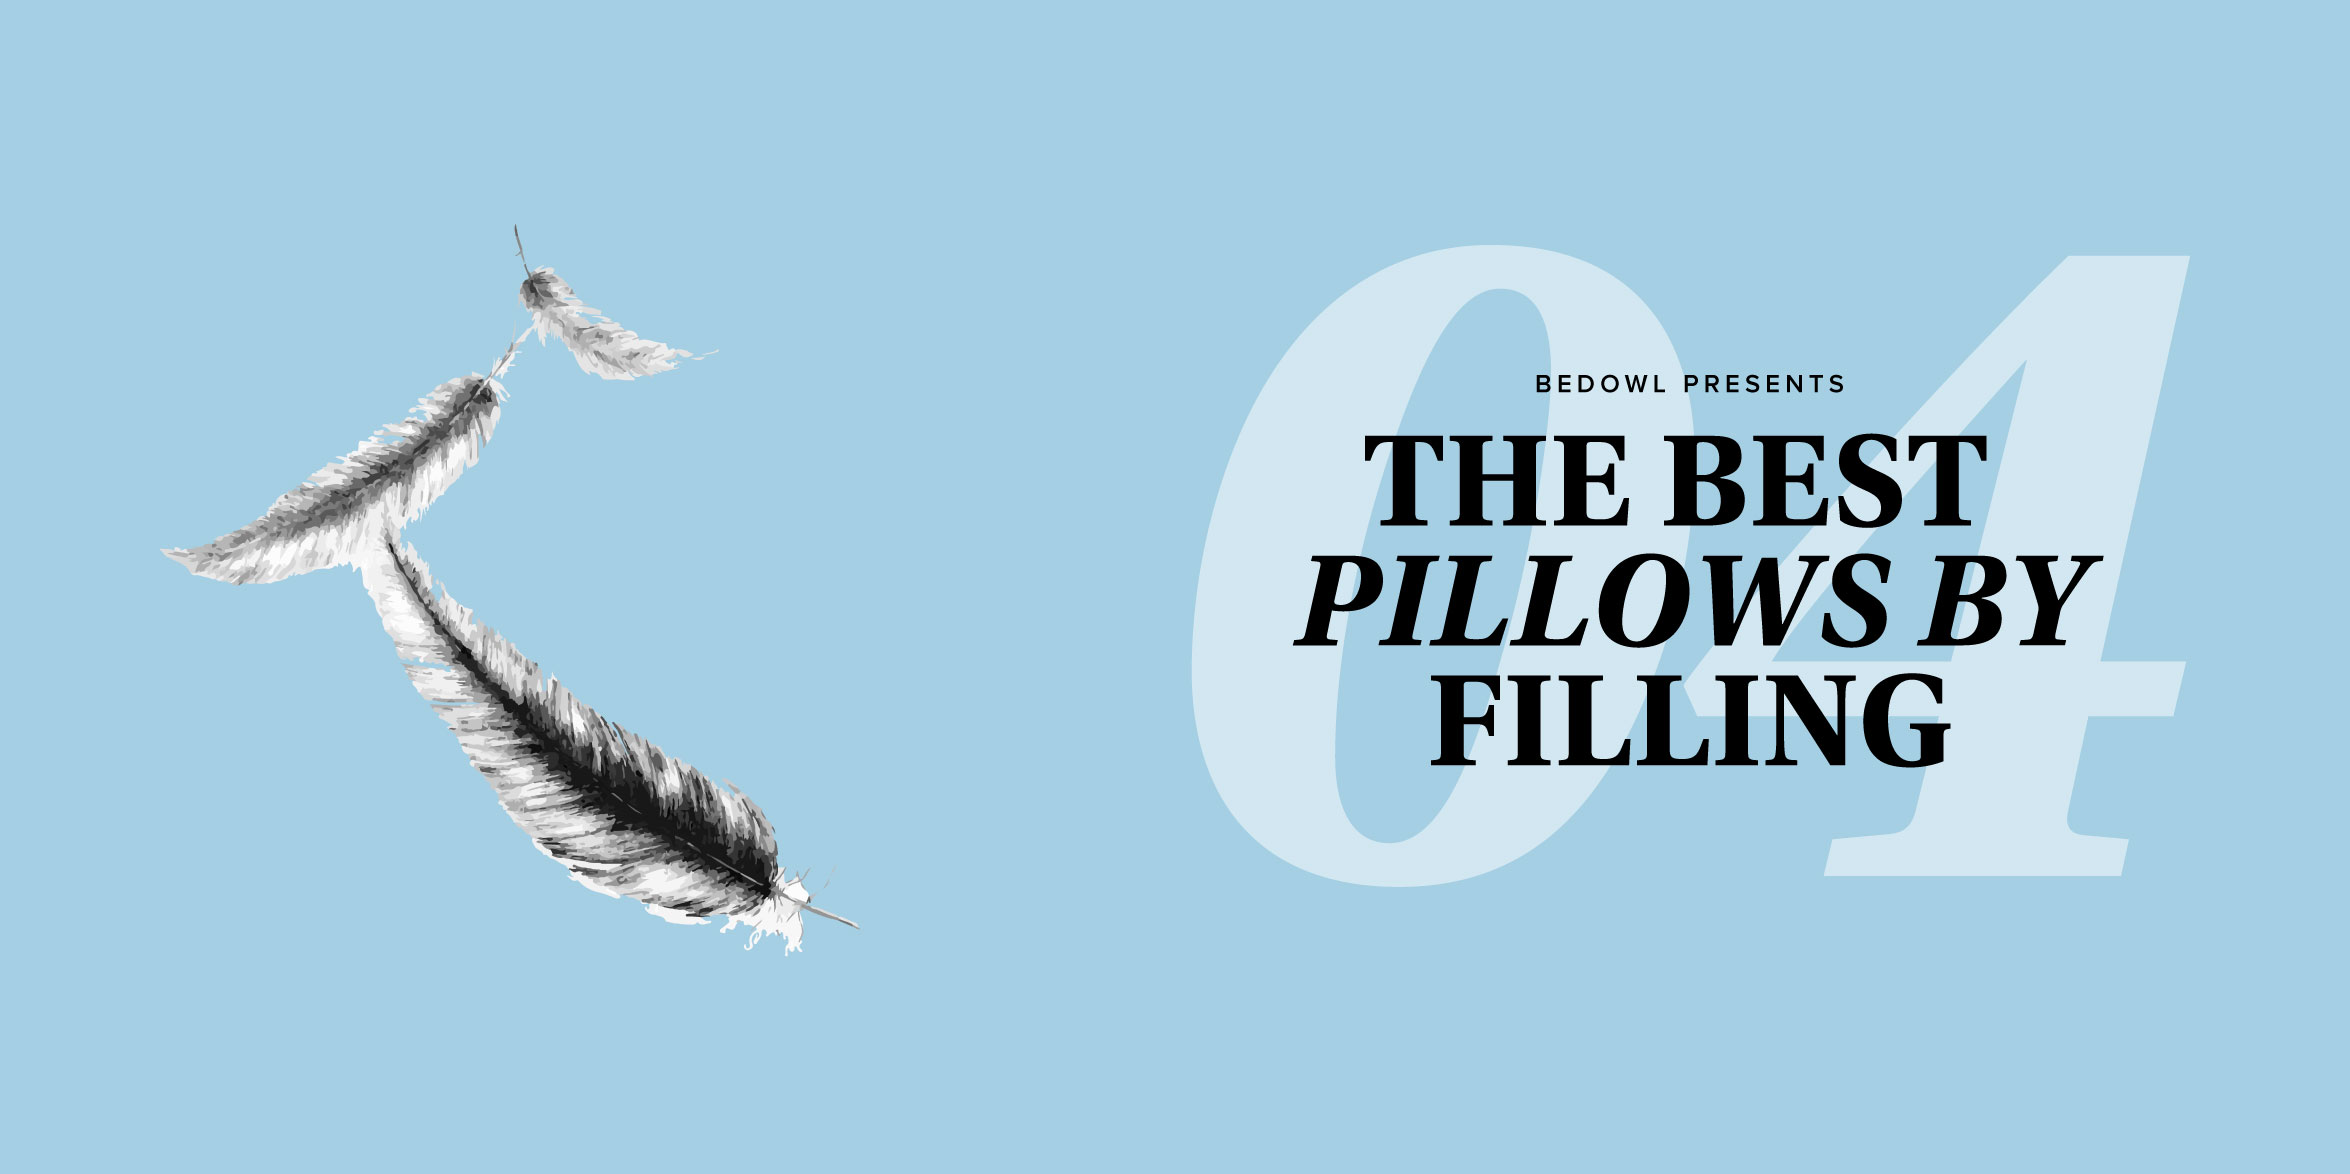 Top Bed Pillows by Filling from Bedowl